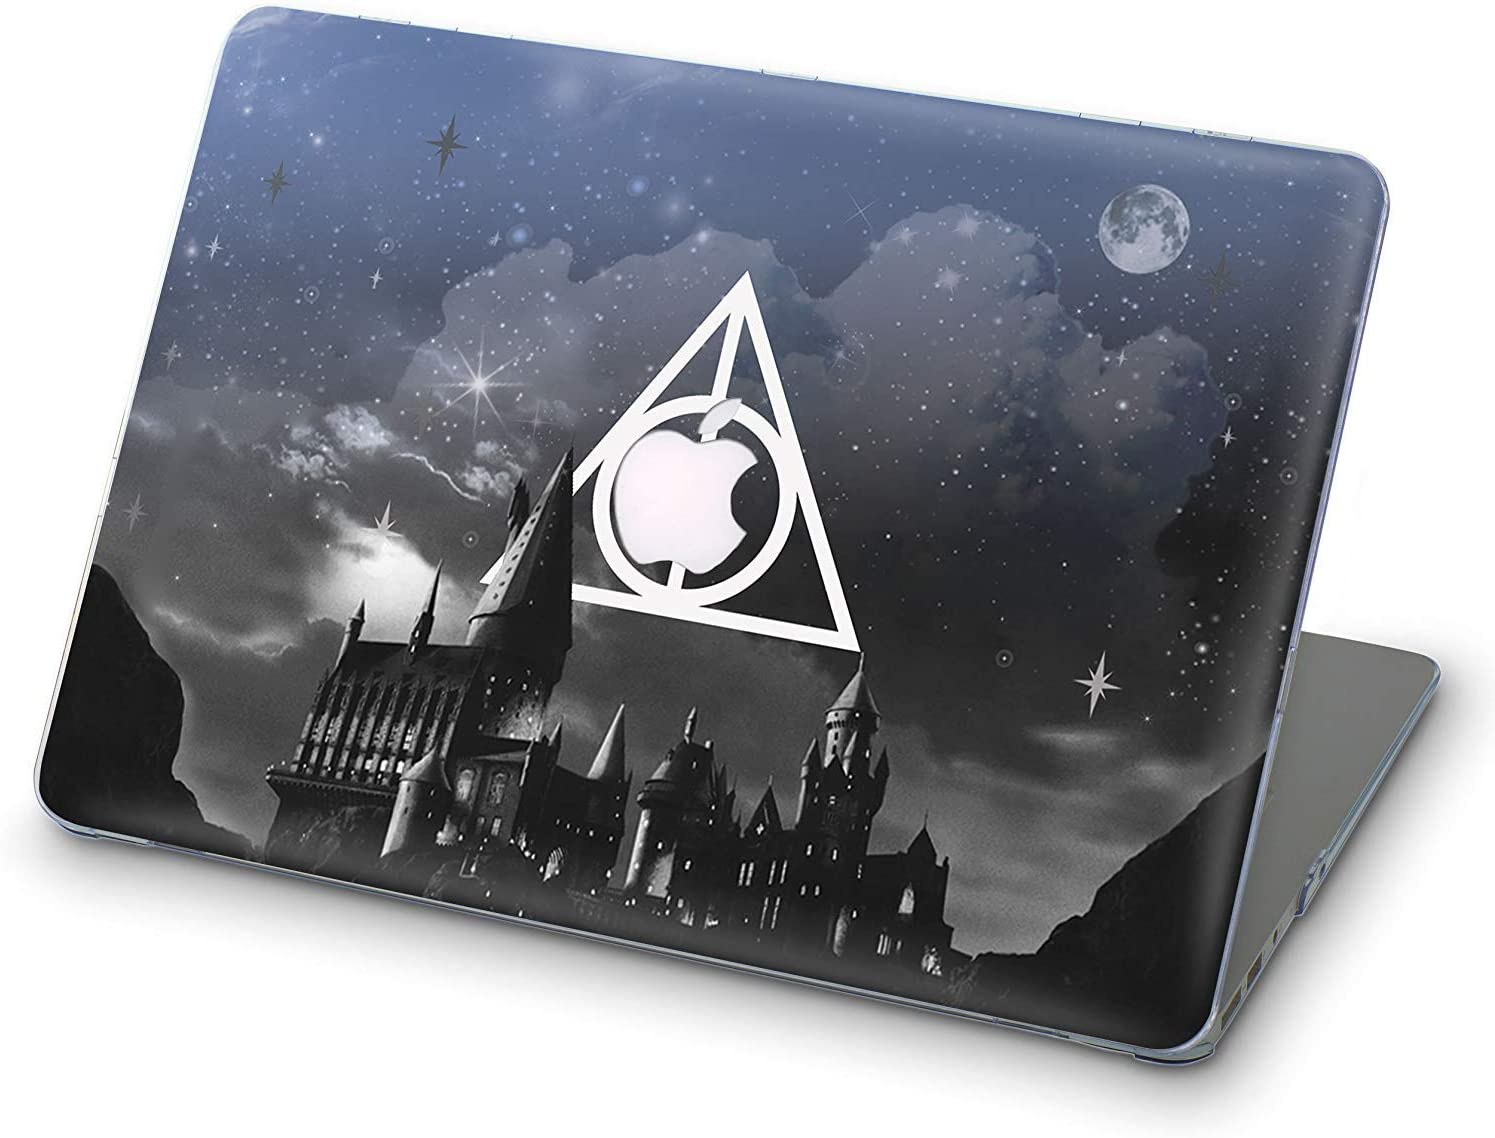 696designers 3D Varnished Hogwarts Night Full Cover Hard Shell Case for Apple MacBook Air 13.3 Inch 2018 (Harry Potter) A1932